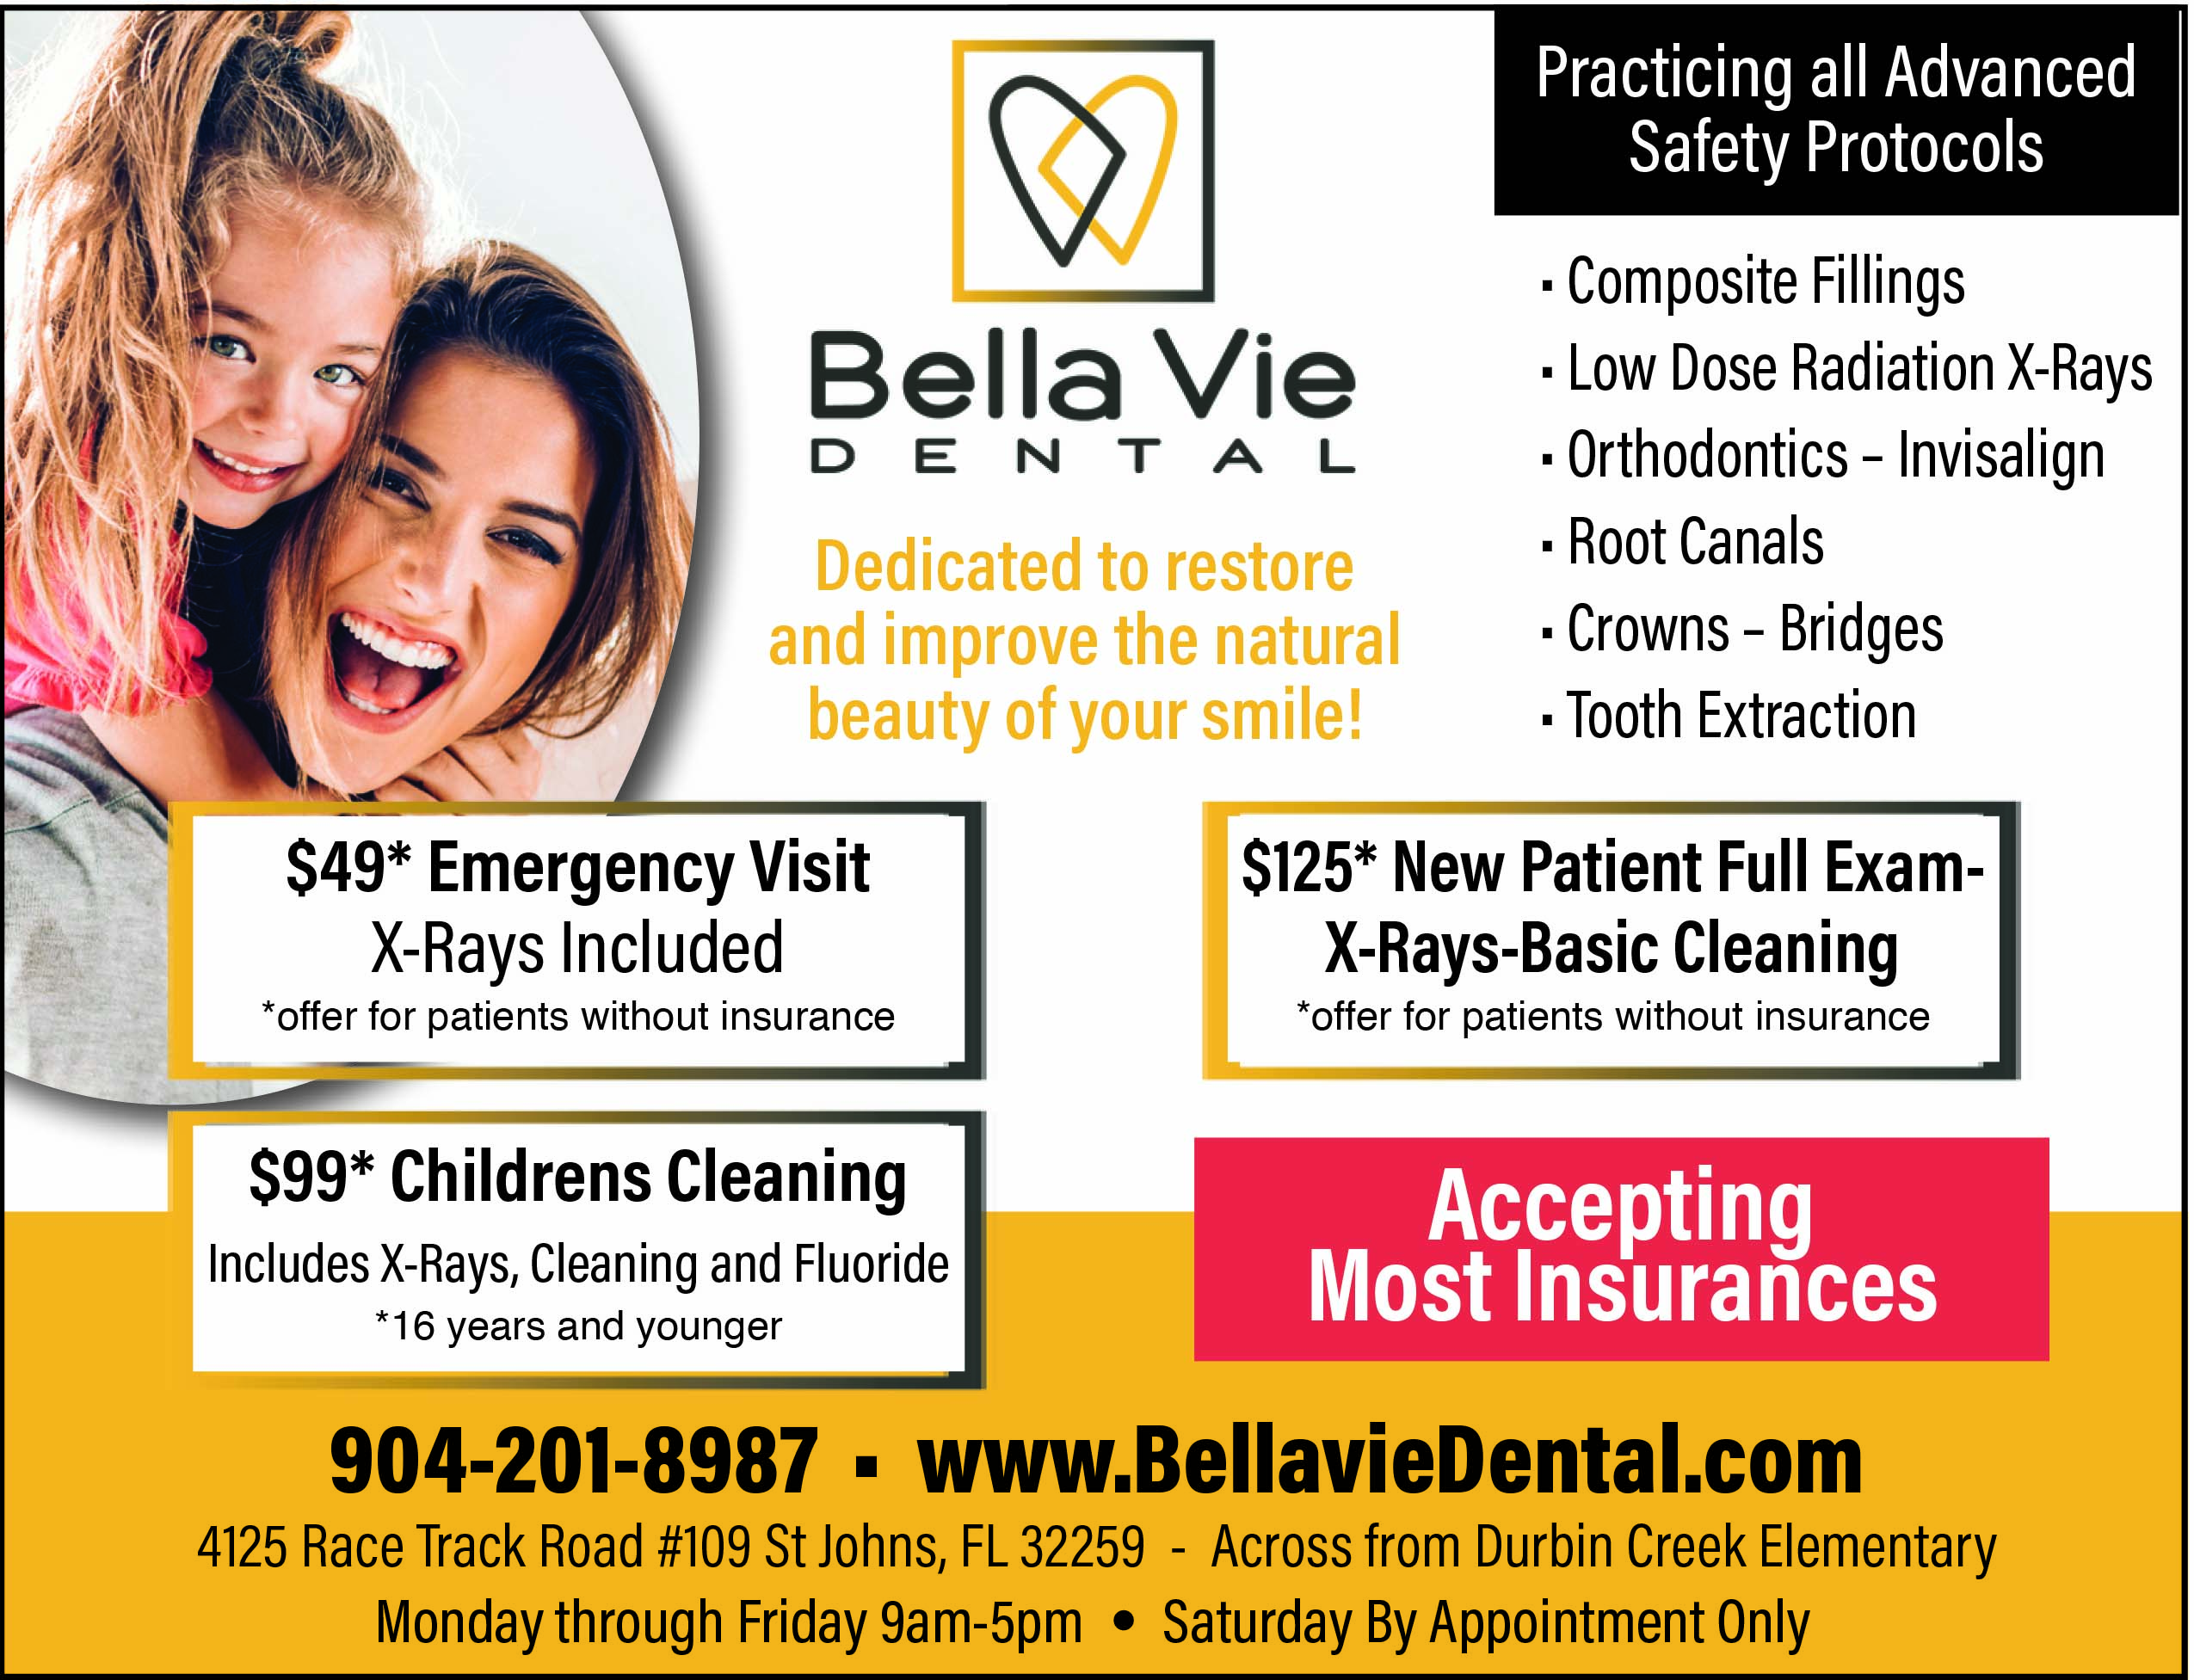 Bella Vie Dental Dedicated to restore and improve the natural beauty of your smile!